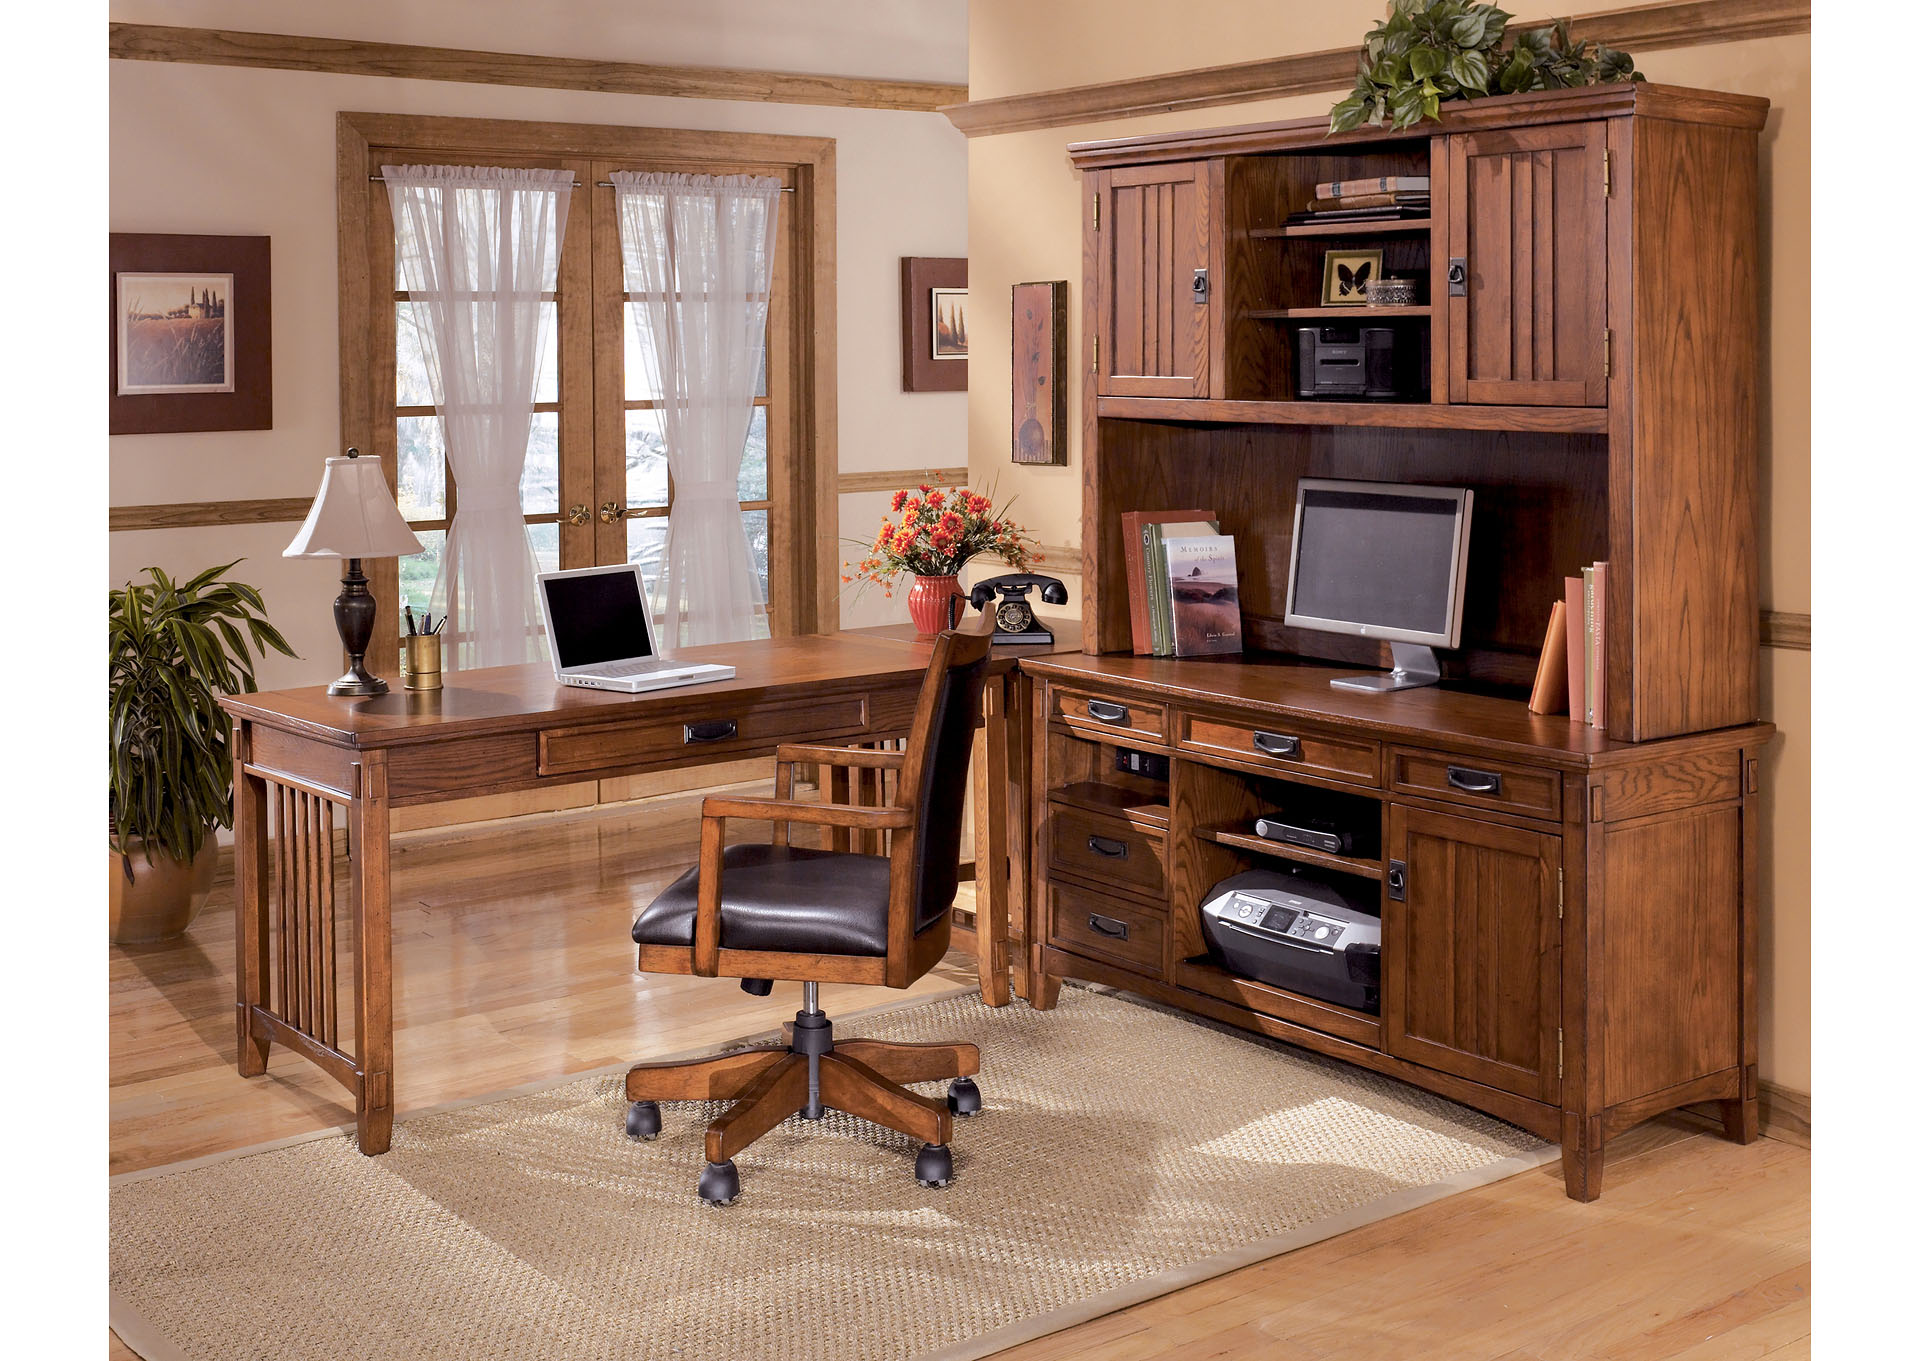 Cross Island 4-Piece L-Shape Desk ,ABF Signature Design by Ashley